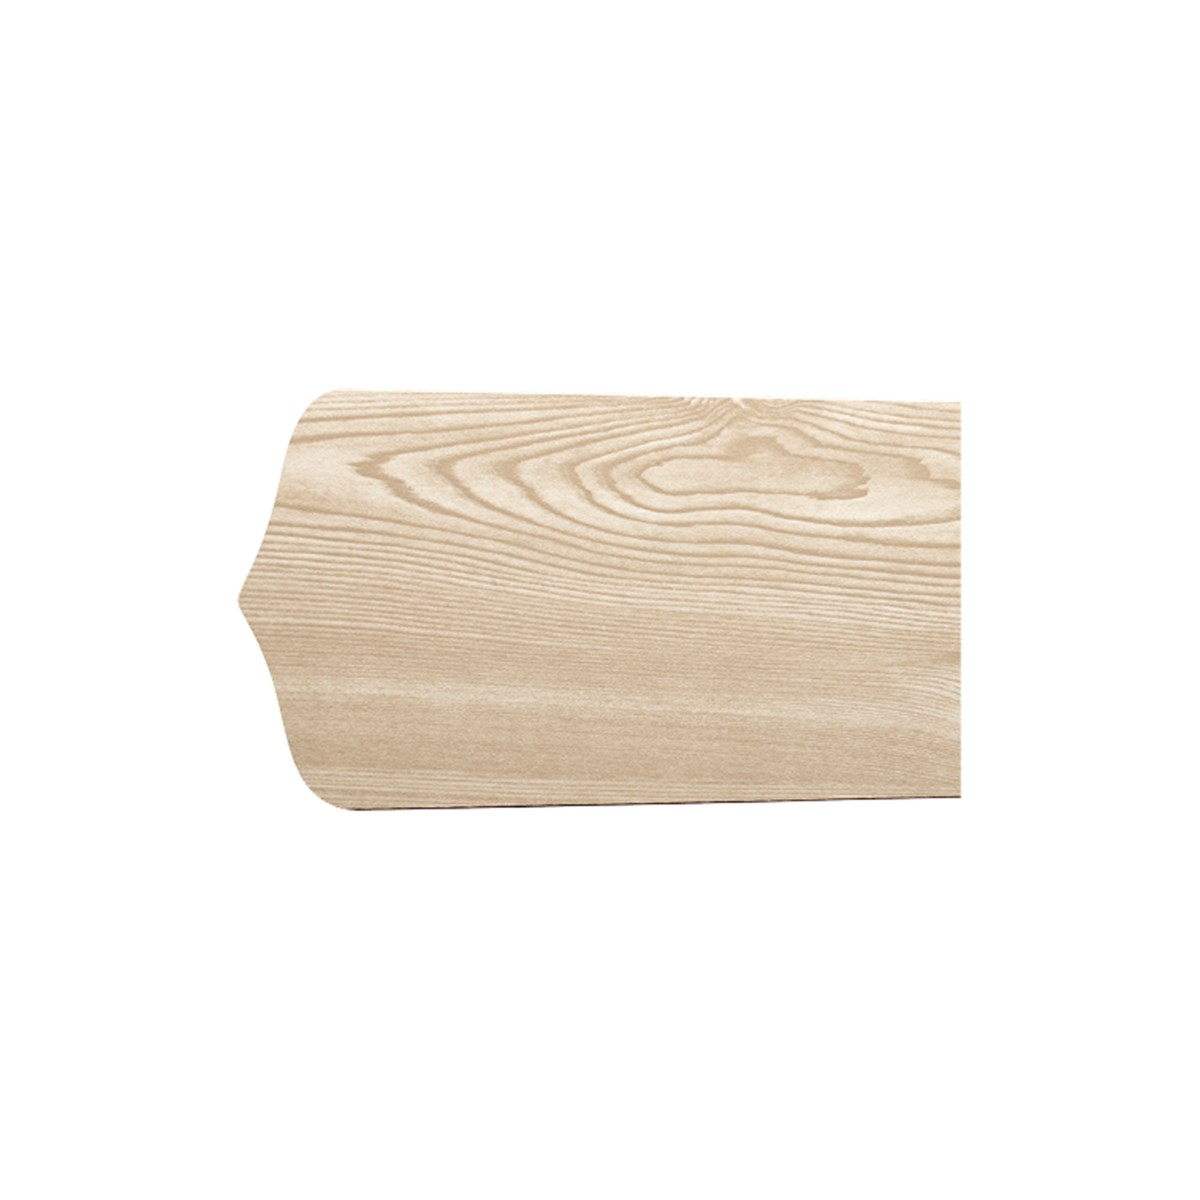 OLD PINE TYPE 1-42 POINT